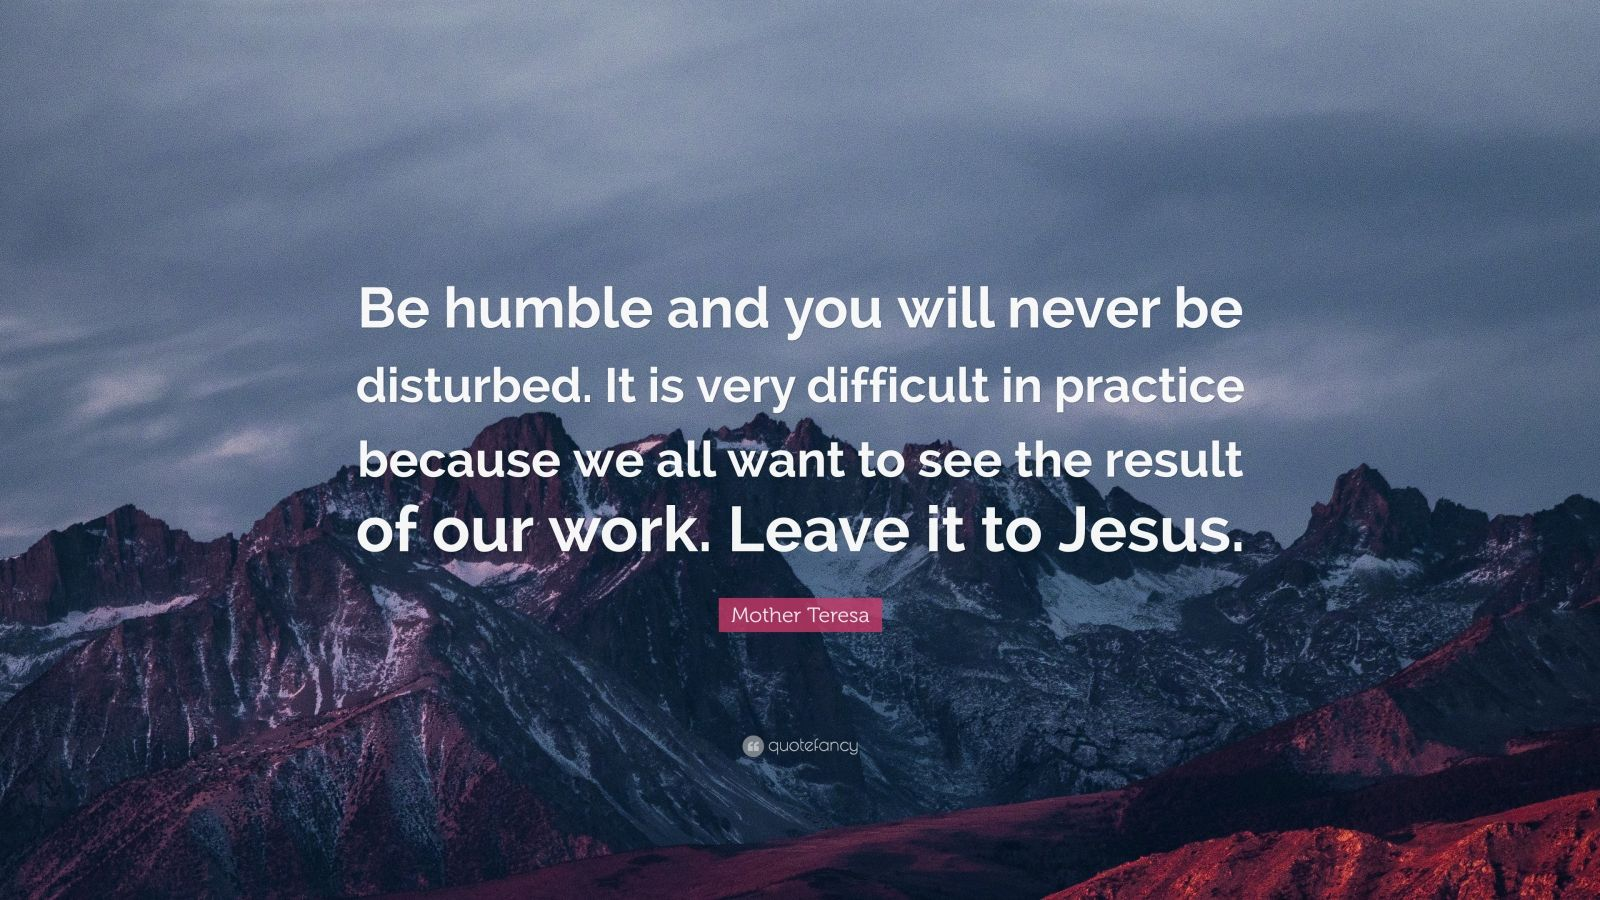 """Mother Teresa Quote: """"Be humble and you will never be disturbed. It is very difficult in practice because we all want to see the result of our work. Leave it to Jesus."""""""